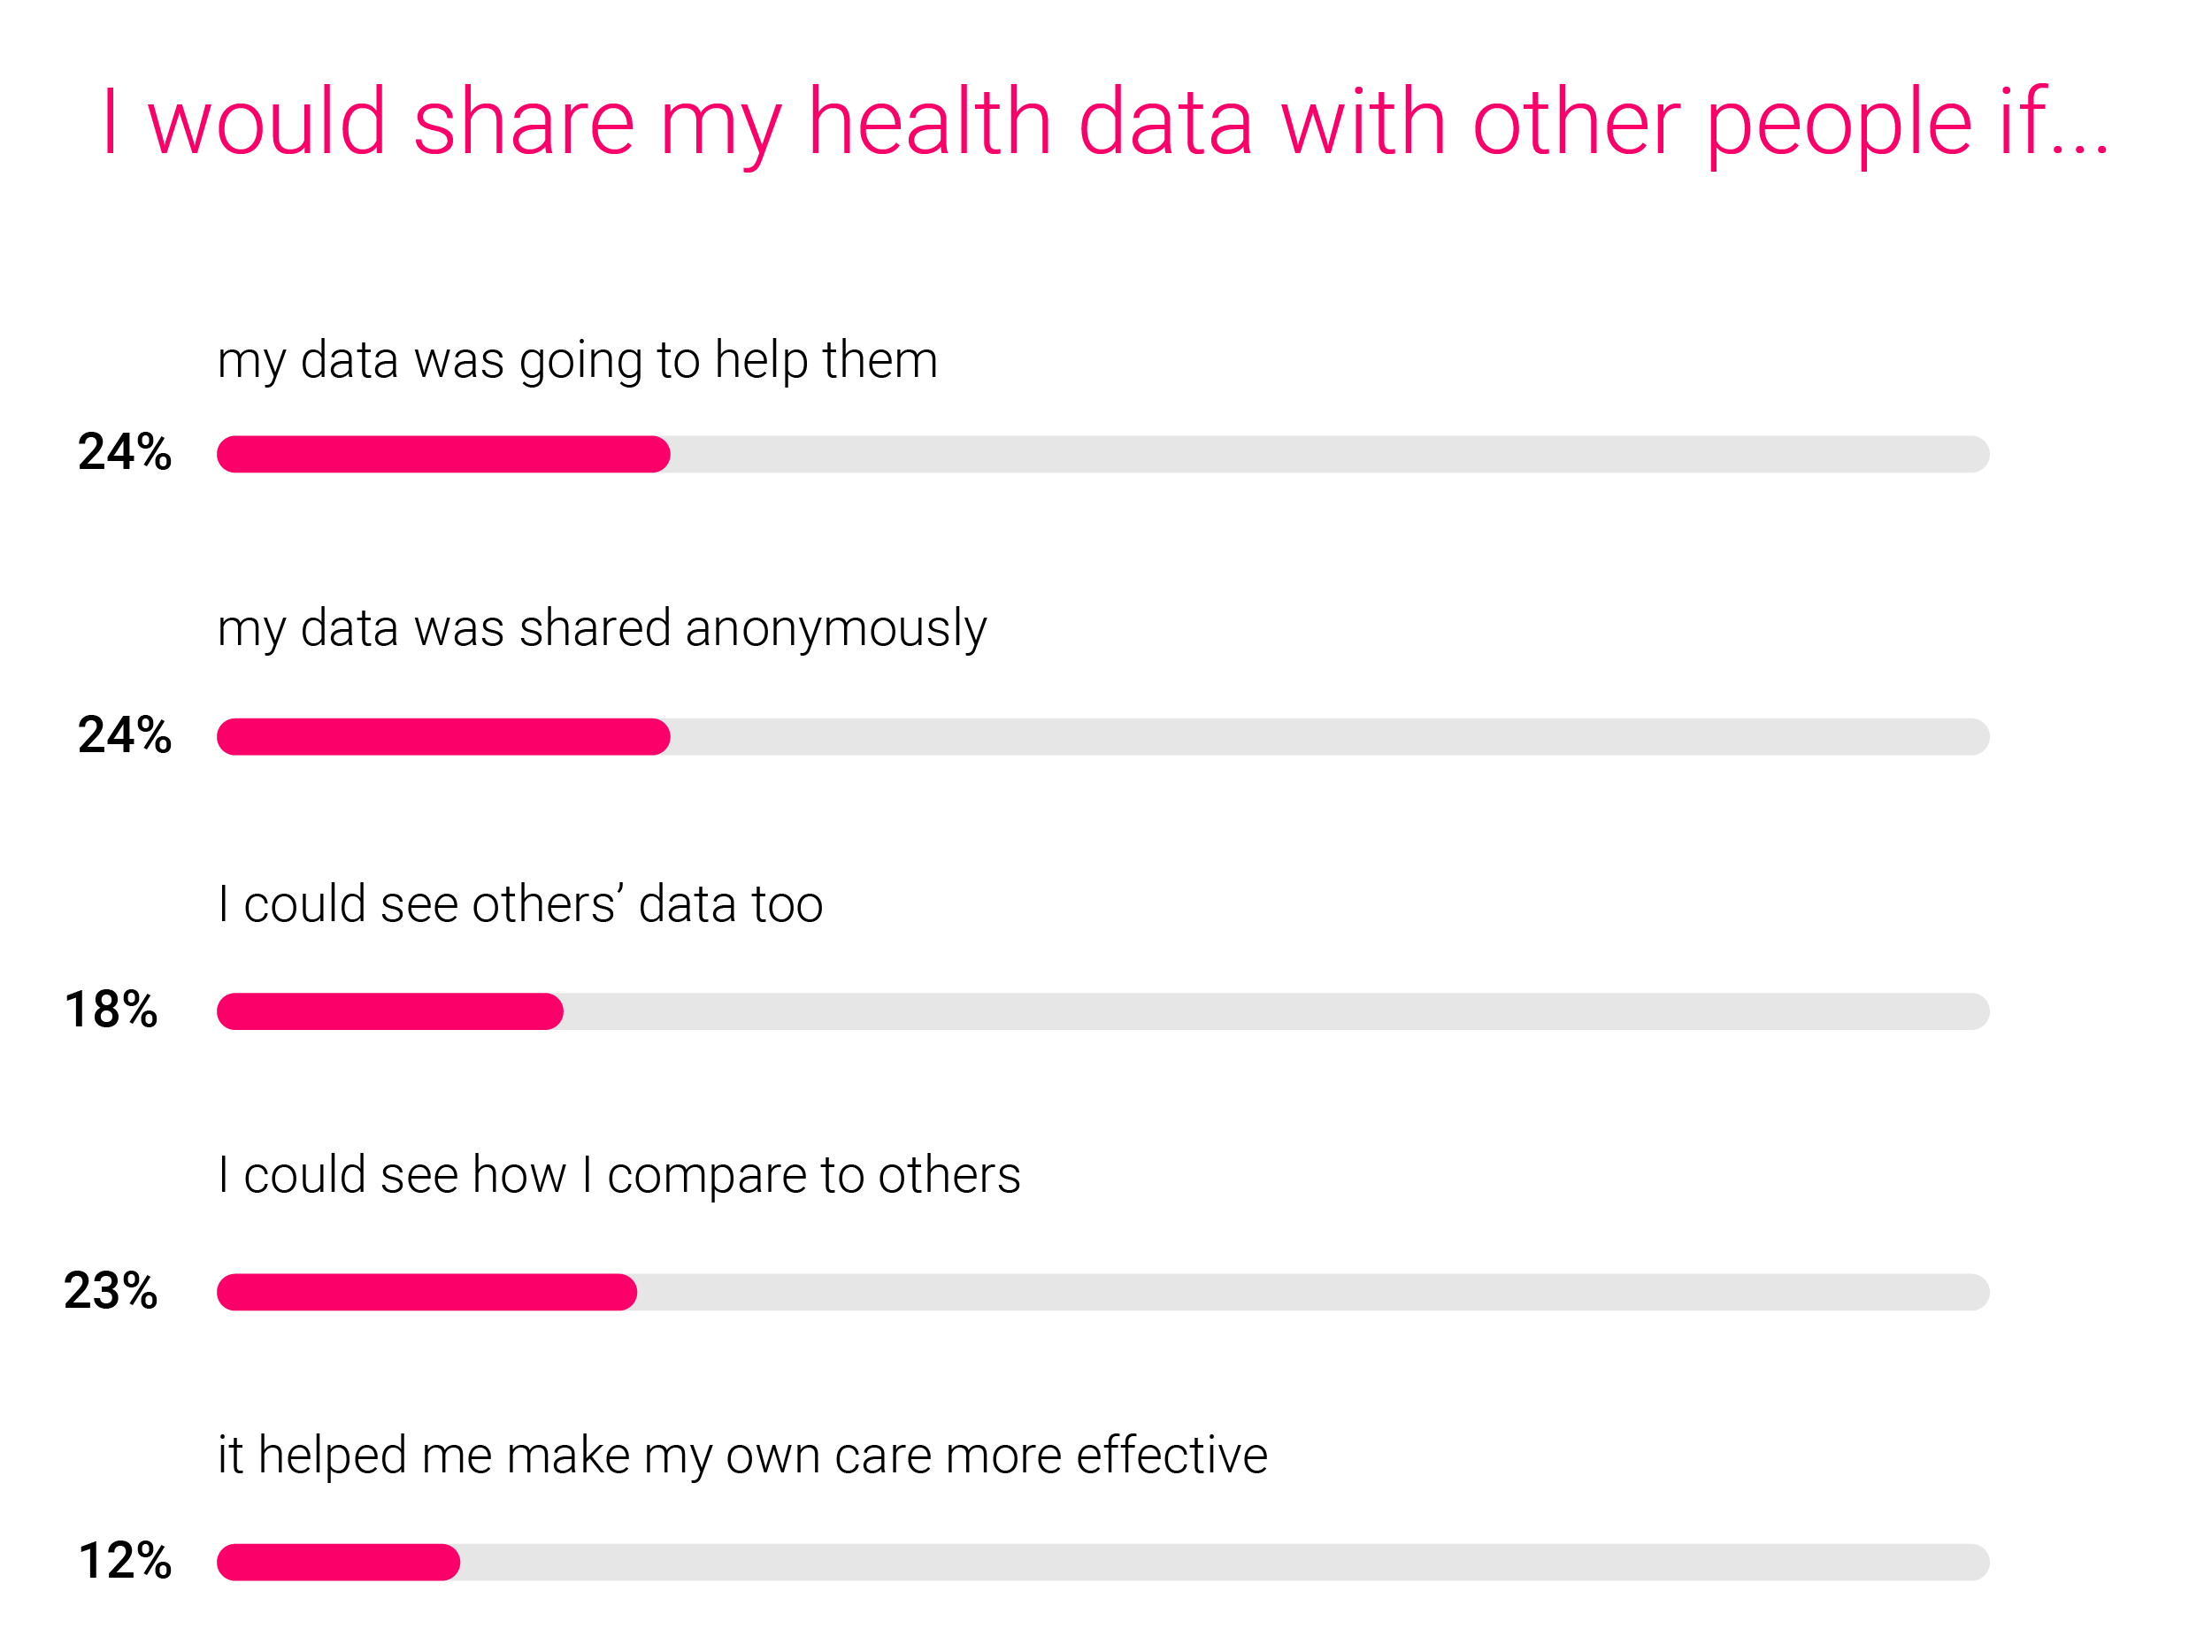 Poll: What would make you share your health data?